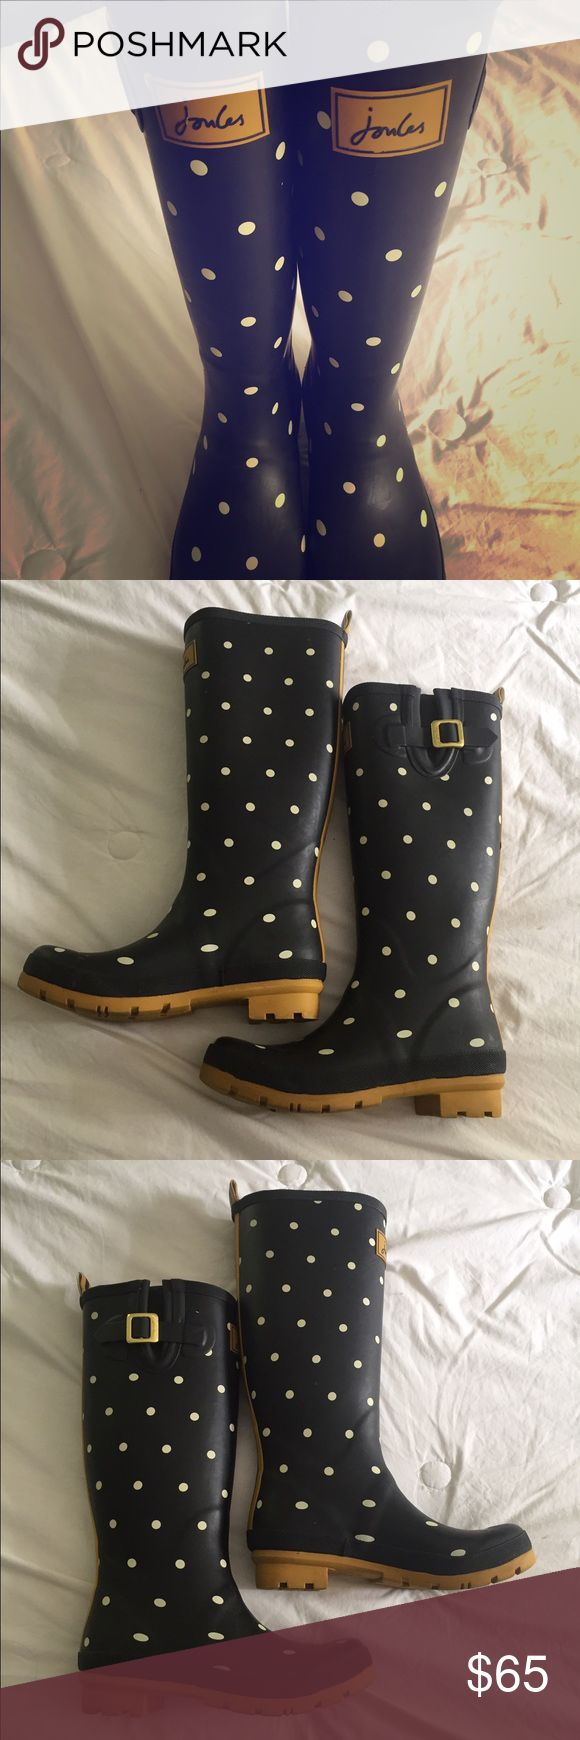 SALE Joules Polka Dot Wellies Rainboots Joules Wellies! These black rainboots have white polka dots, yellow striped back, and yellow on sole. They are a size EU 38, US 7, and have been worn less than 5 times. These are my favorite brand for comfortable rain boots! Joules Shoes Winter & Rain Boots